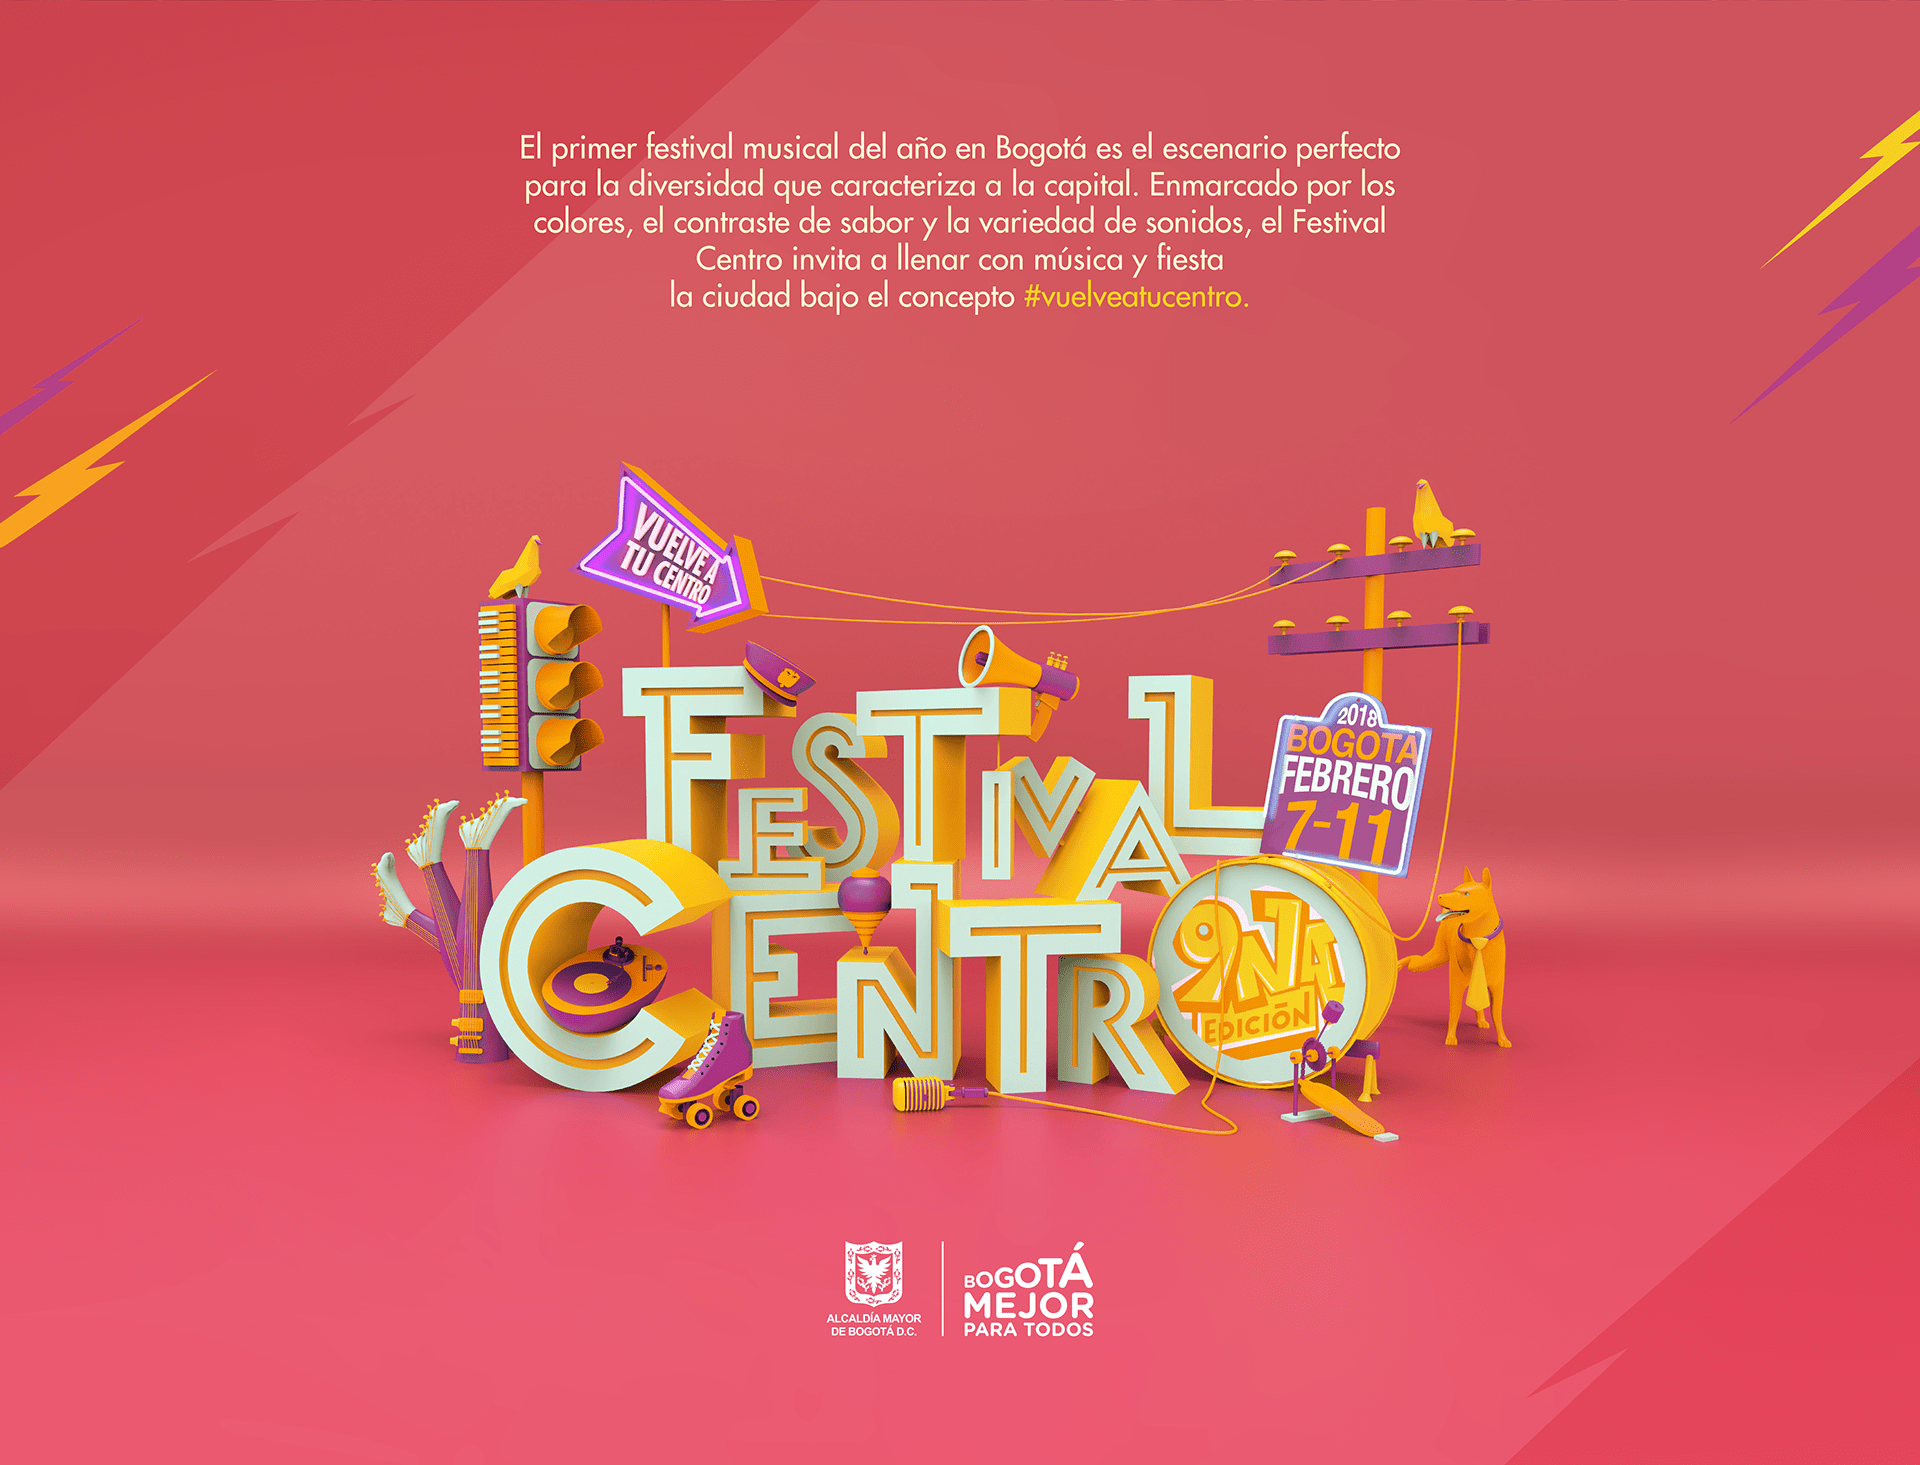 festival-centro-3D-design-text-typography-poster-letters-music-sound-graphic-art